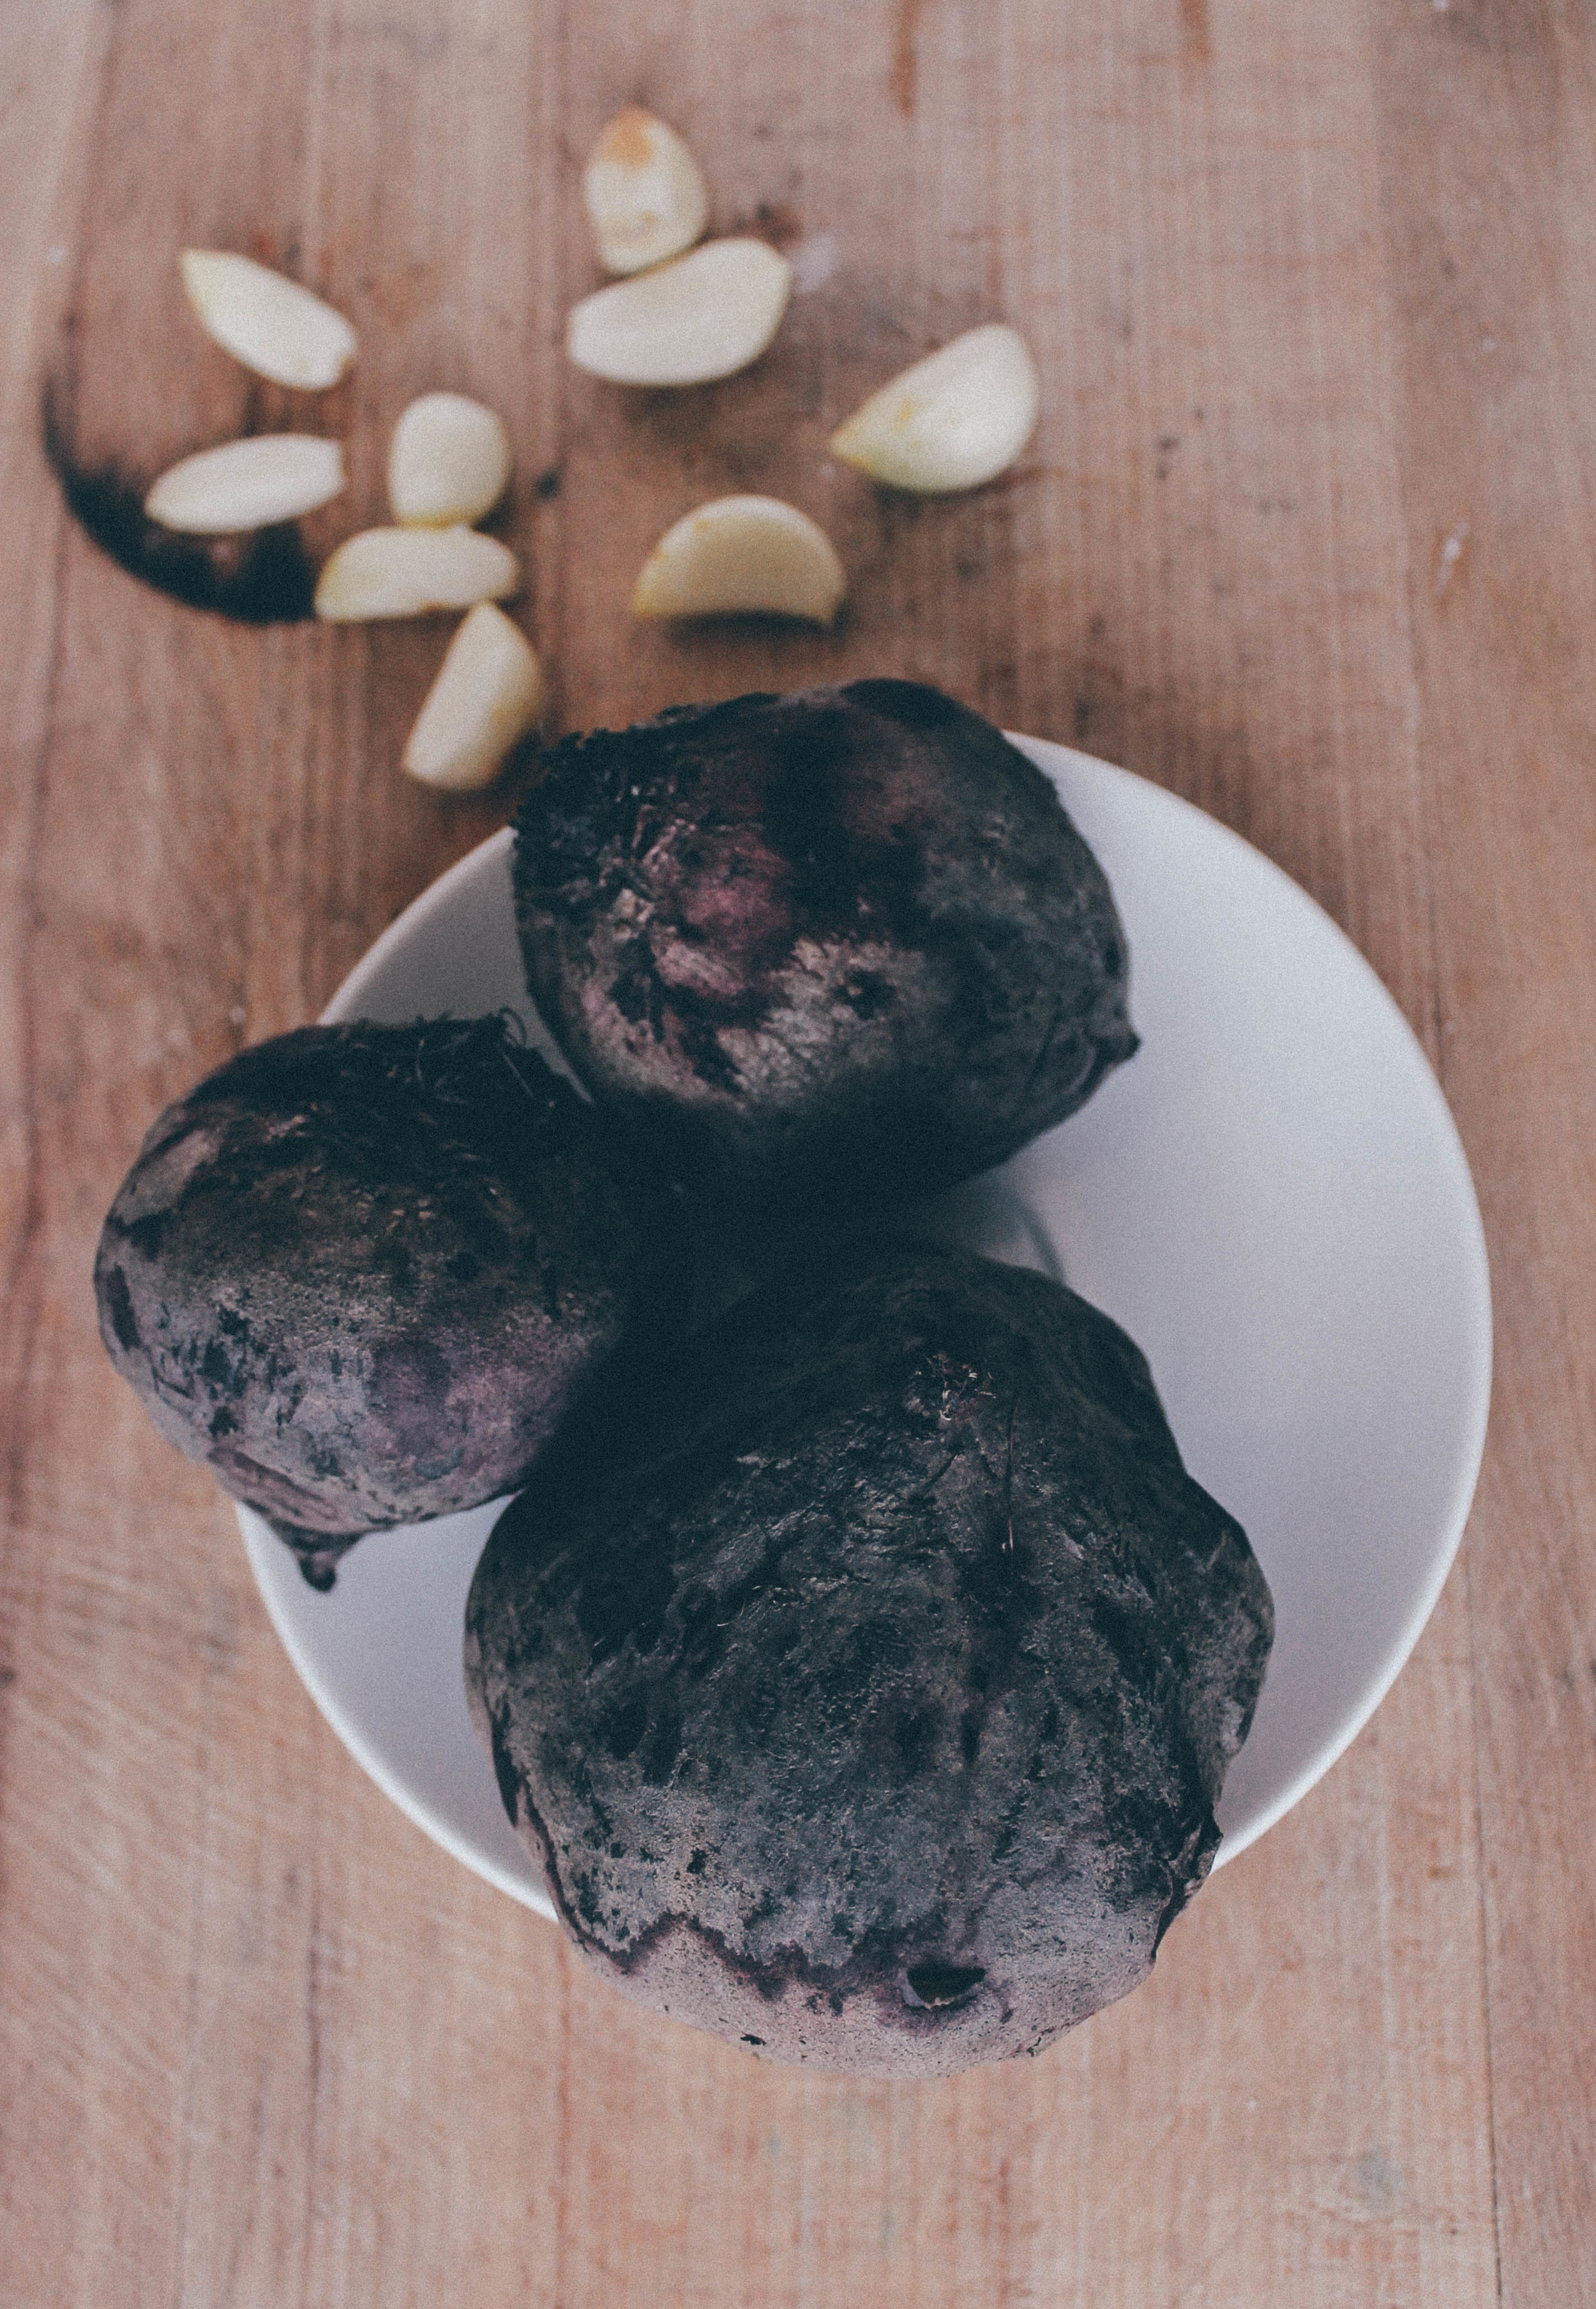 boil the beet root cubes